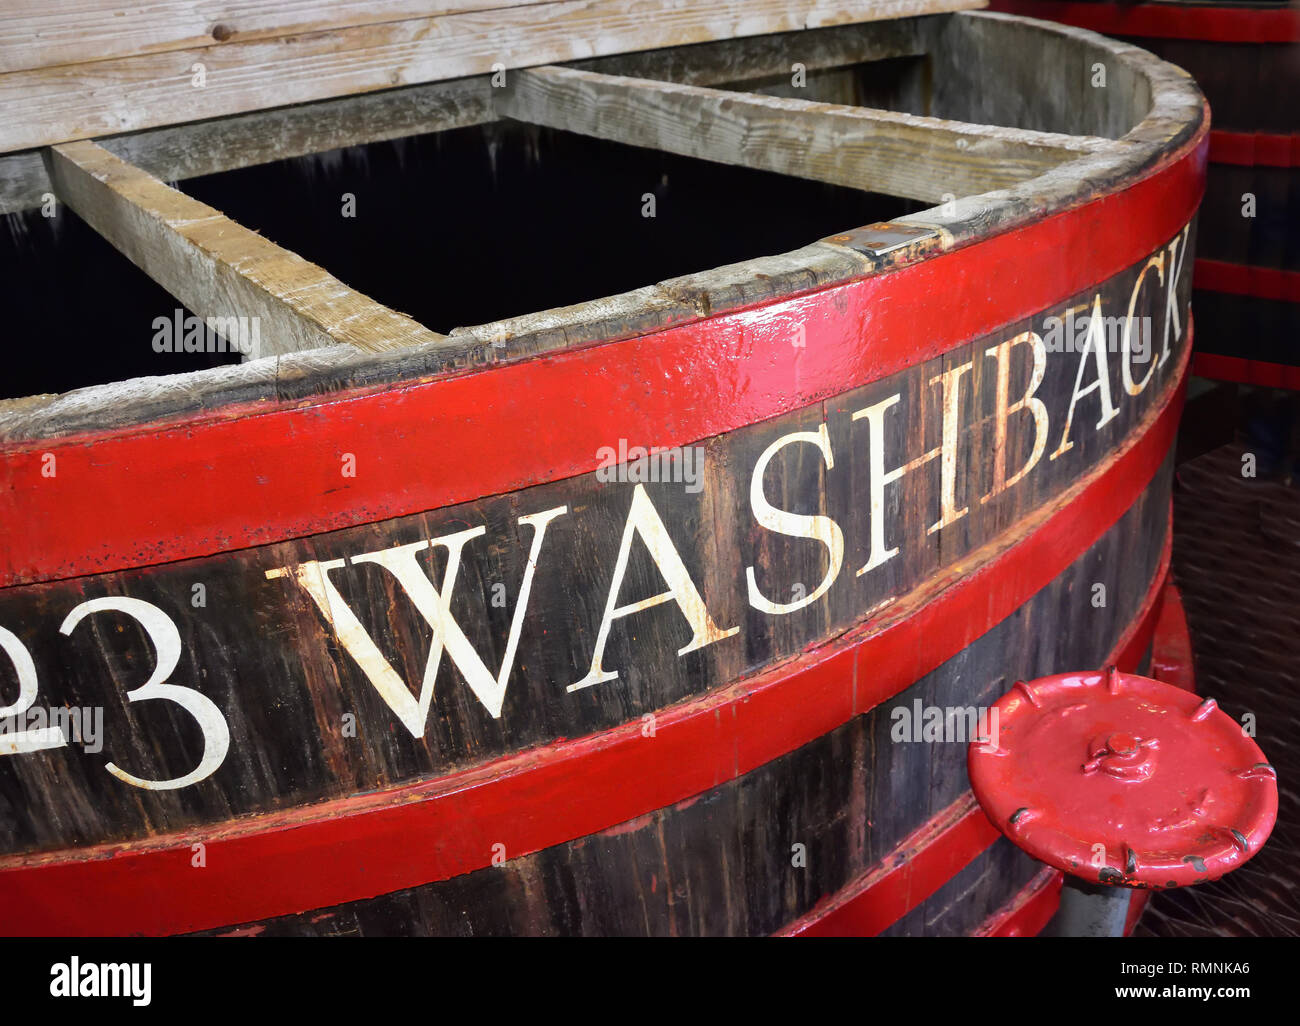 Traditional wooden washback in Tobermory Distillery Visitor Centre, Tobermory, Isle of Bute, Inner Hebrides, Argyll and Bute, Scotland, United Kingdom - Stock Image